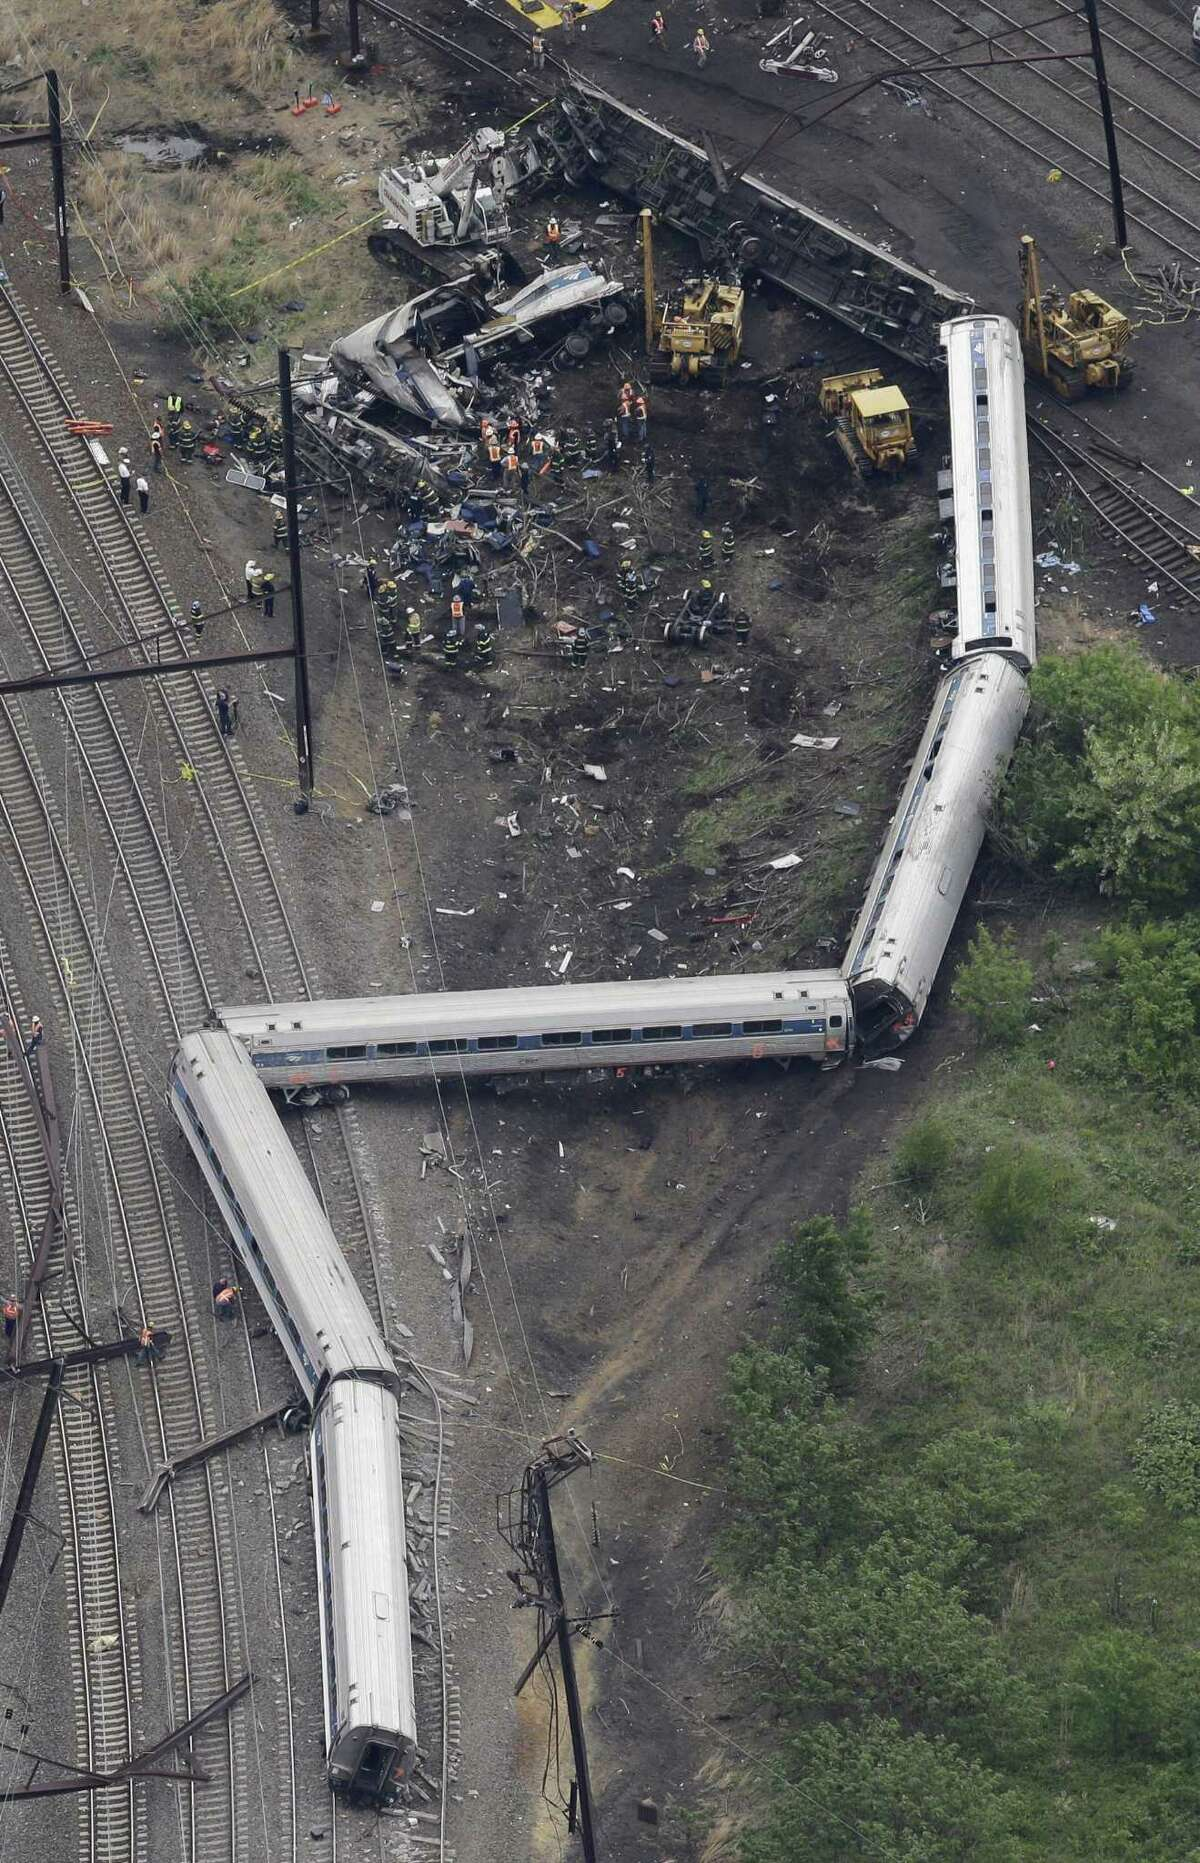 Emergency personnel work at the scene of a deadly train derailment Wednesday in Philadelphia.